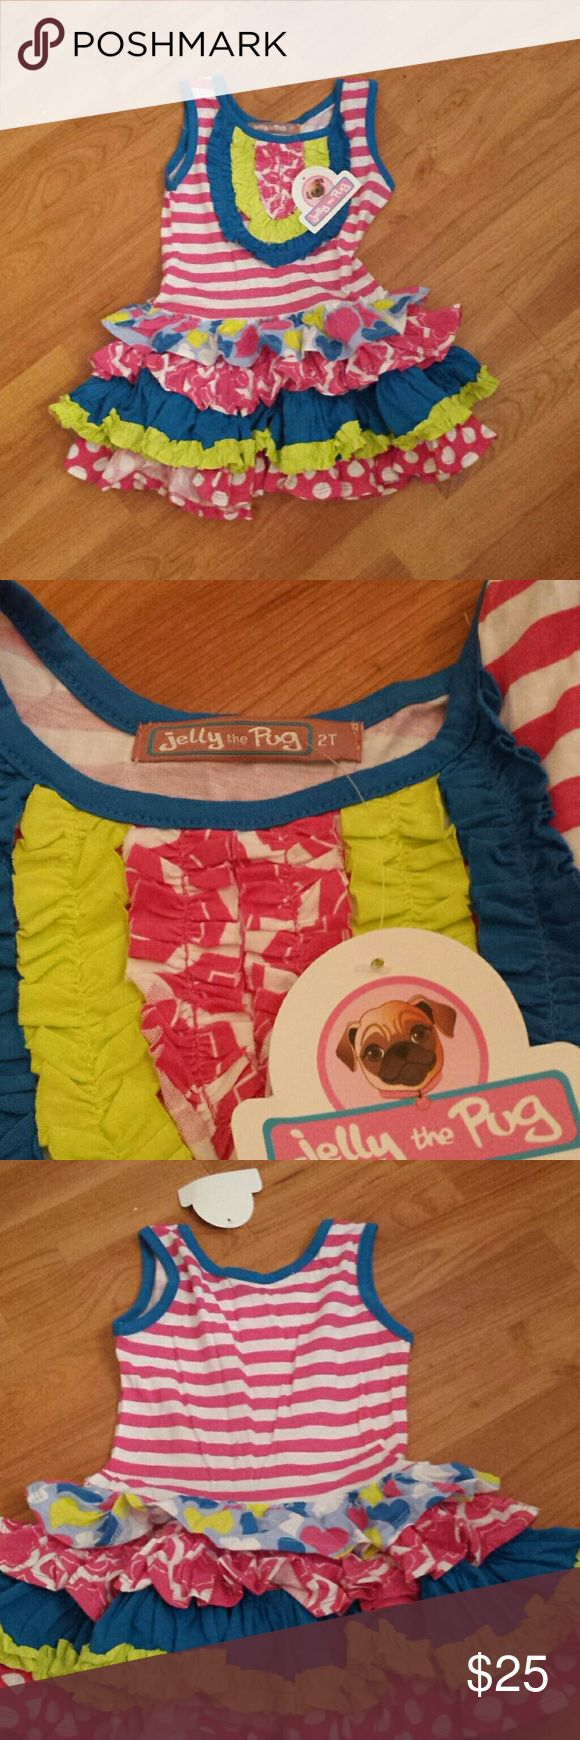 """Jelly the pug size 2T dress Jelly the pug size 2T dress! This is a seriously cute dress from the colors to the prints and it's new with the tag still attached! Made of 100% cotton and from the """"I heart you collection"""" in the Chloe knit dress series. Price firm. jelly the pug Dresses"""